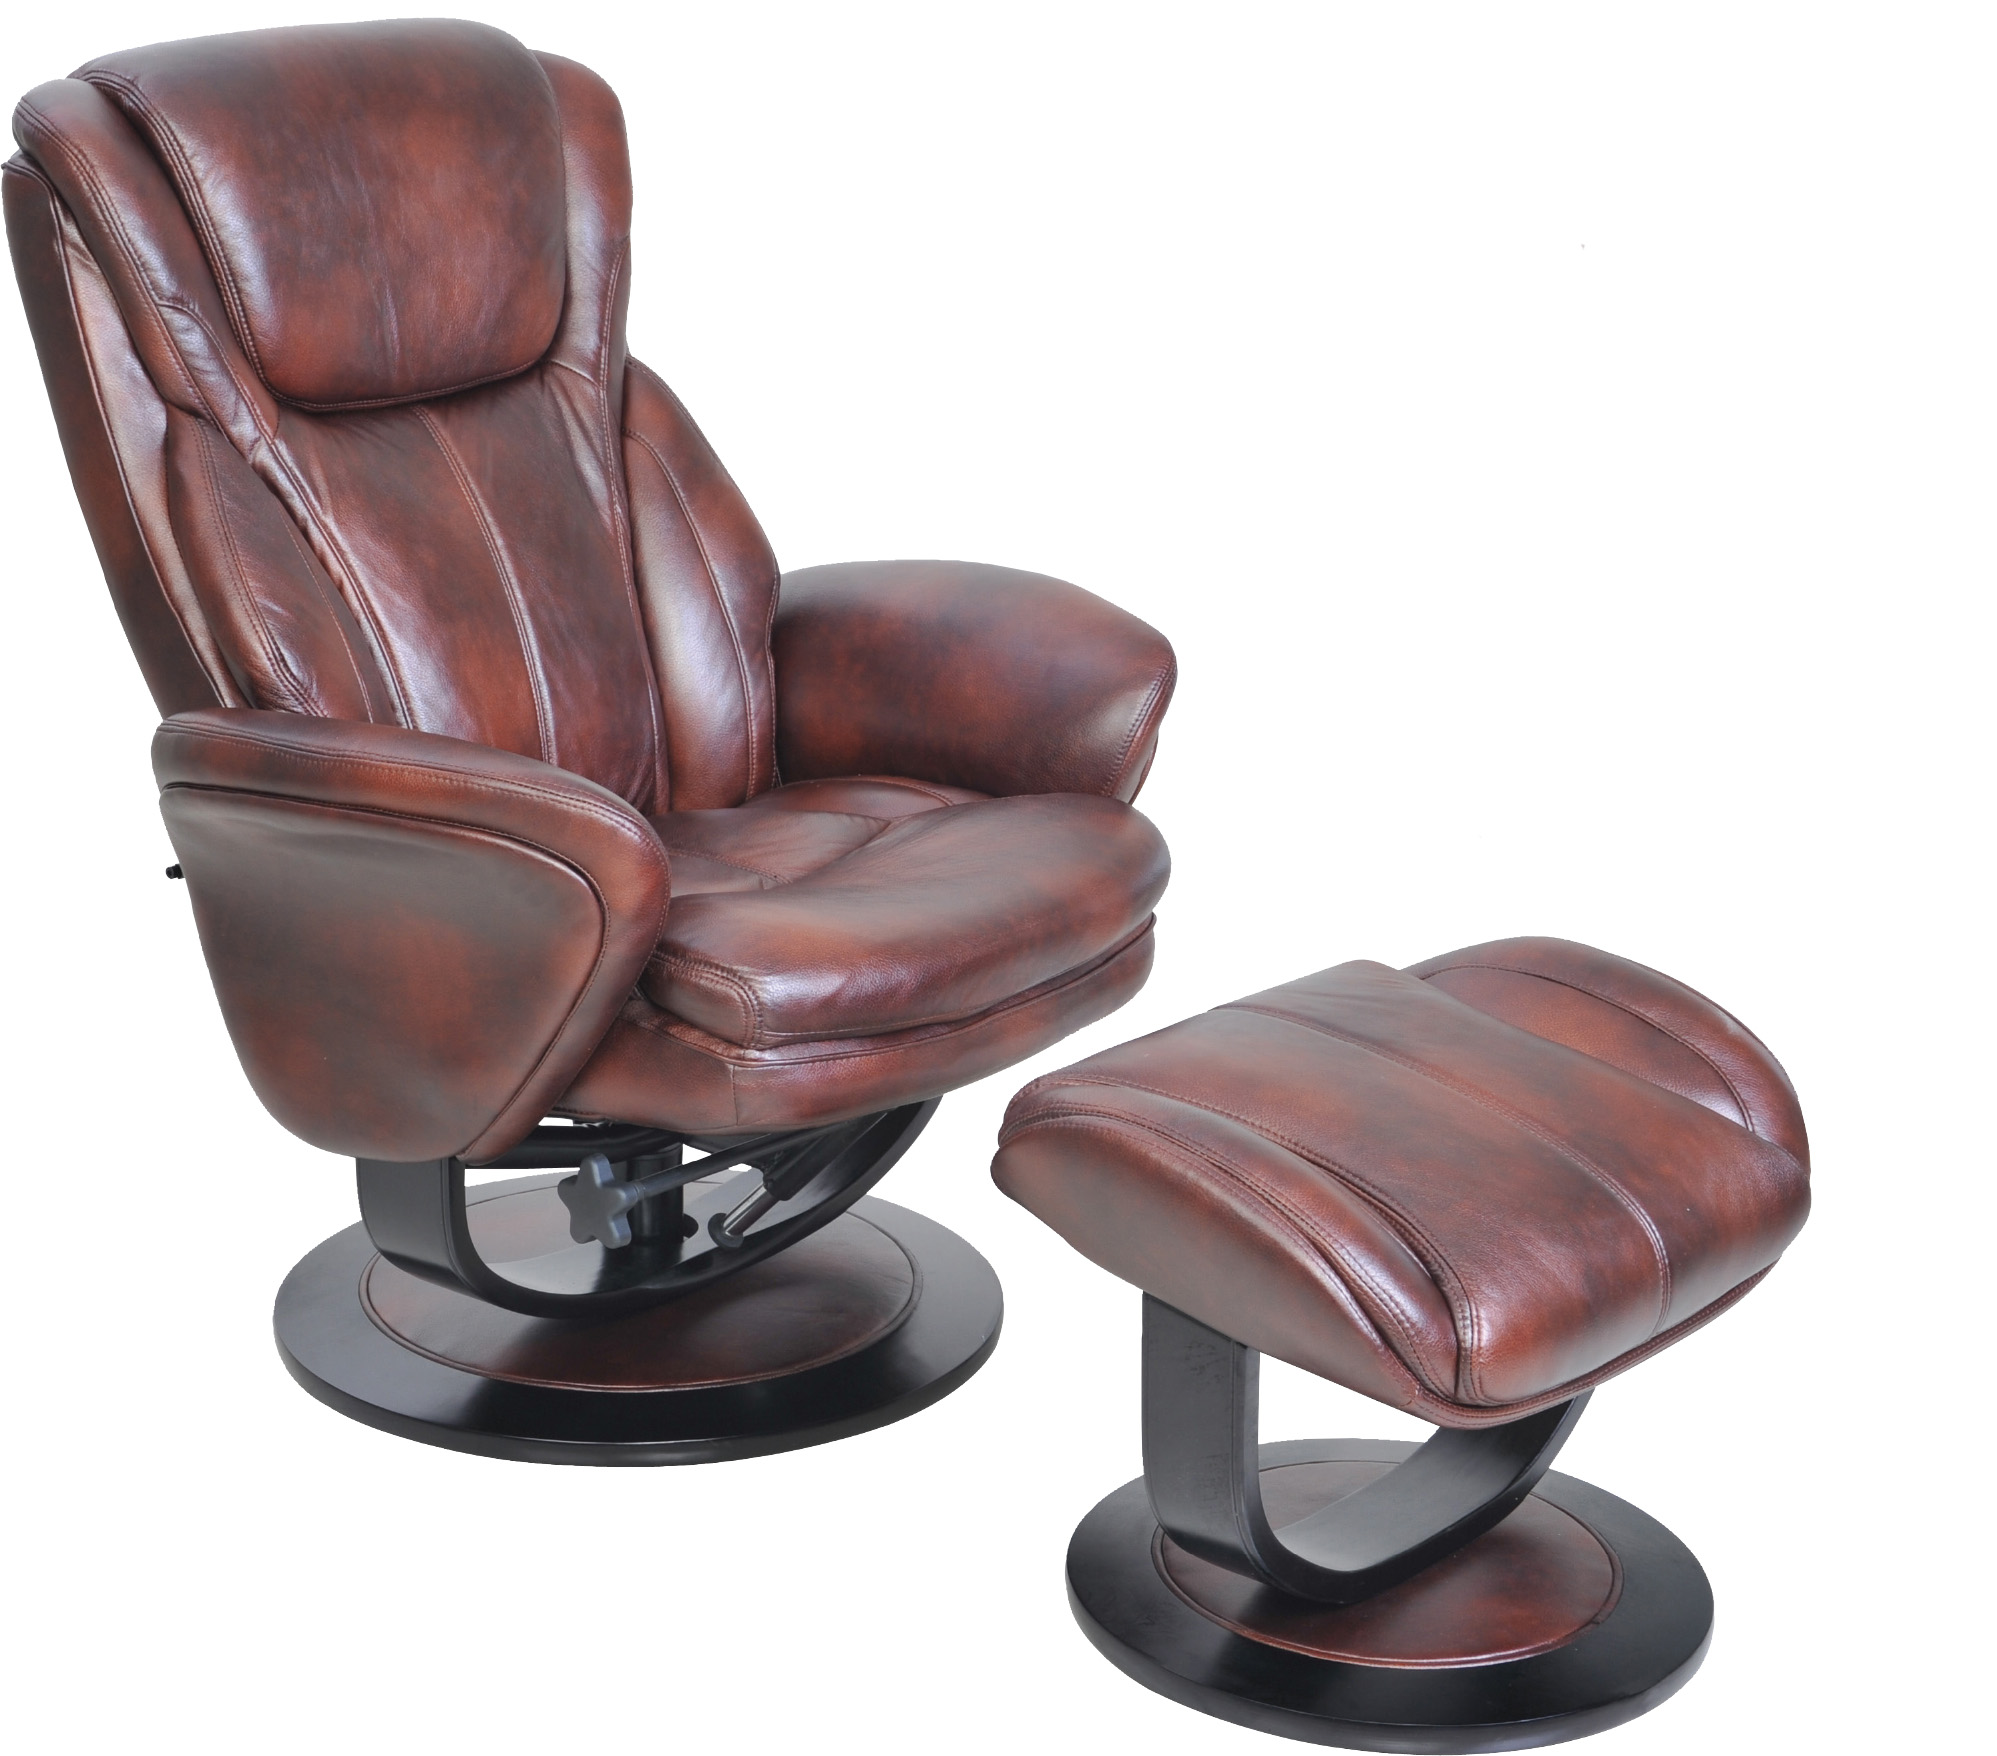 Astonishing Barcalounger Roma Ii Recliner Chair And Ottoman Leather Caraccident5 Cool Chair Designs And Ideas Caraccident5Info